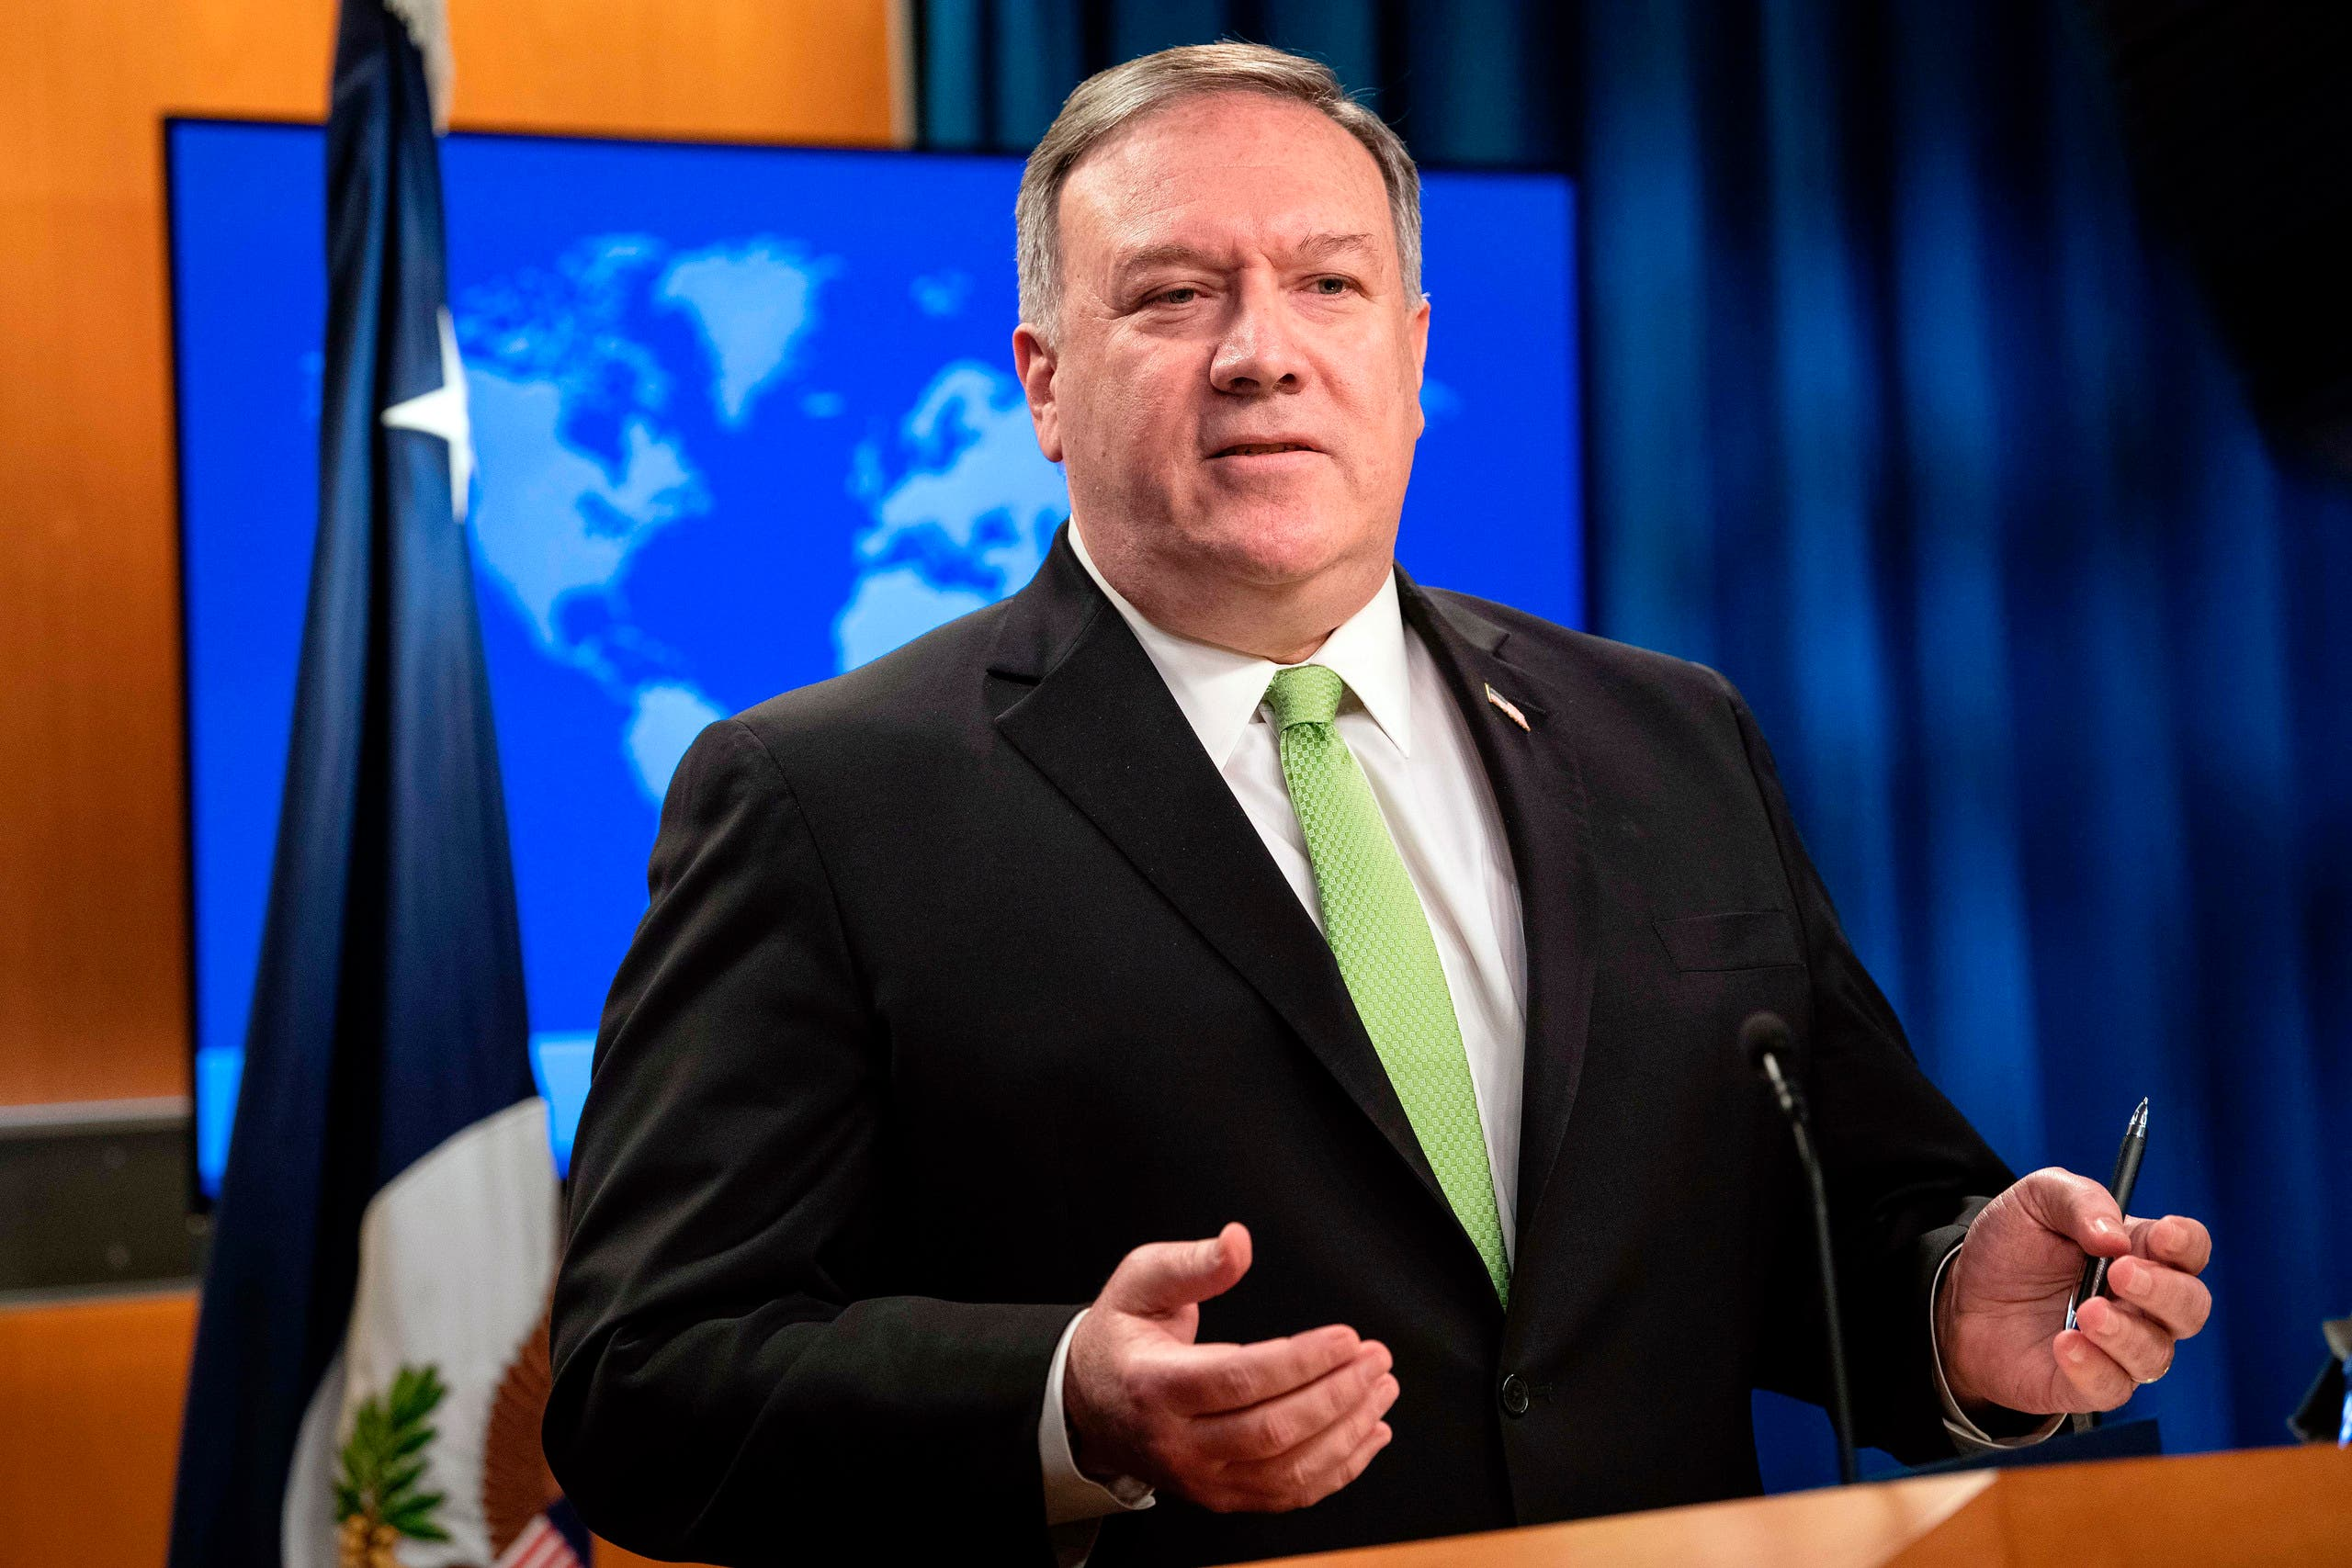 Secretary of State Mike Pompeo speaks during a press briefing at the State Department on Wednesday, May 20, 2020, in Washington. (AP)